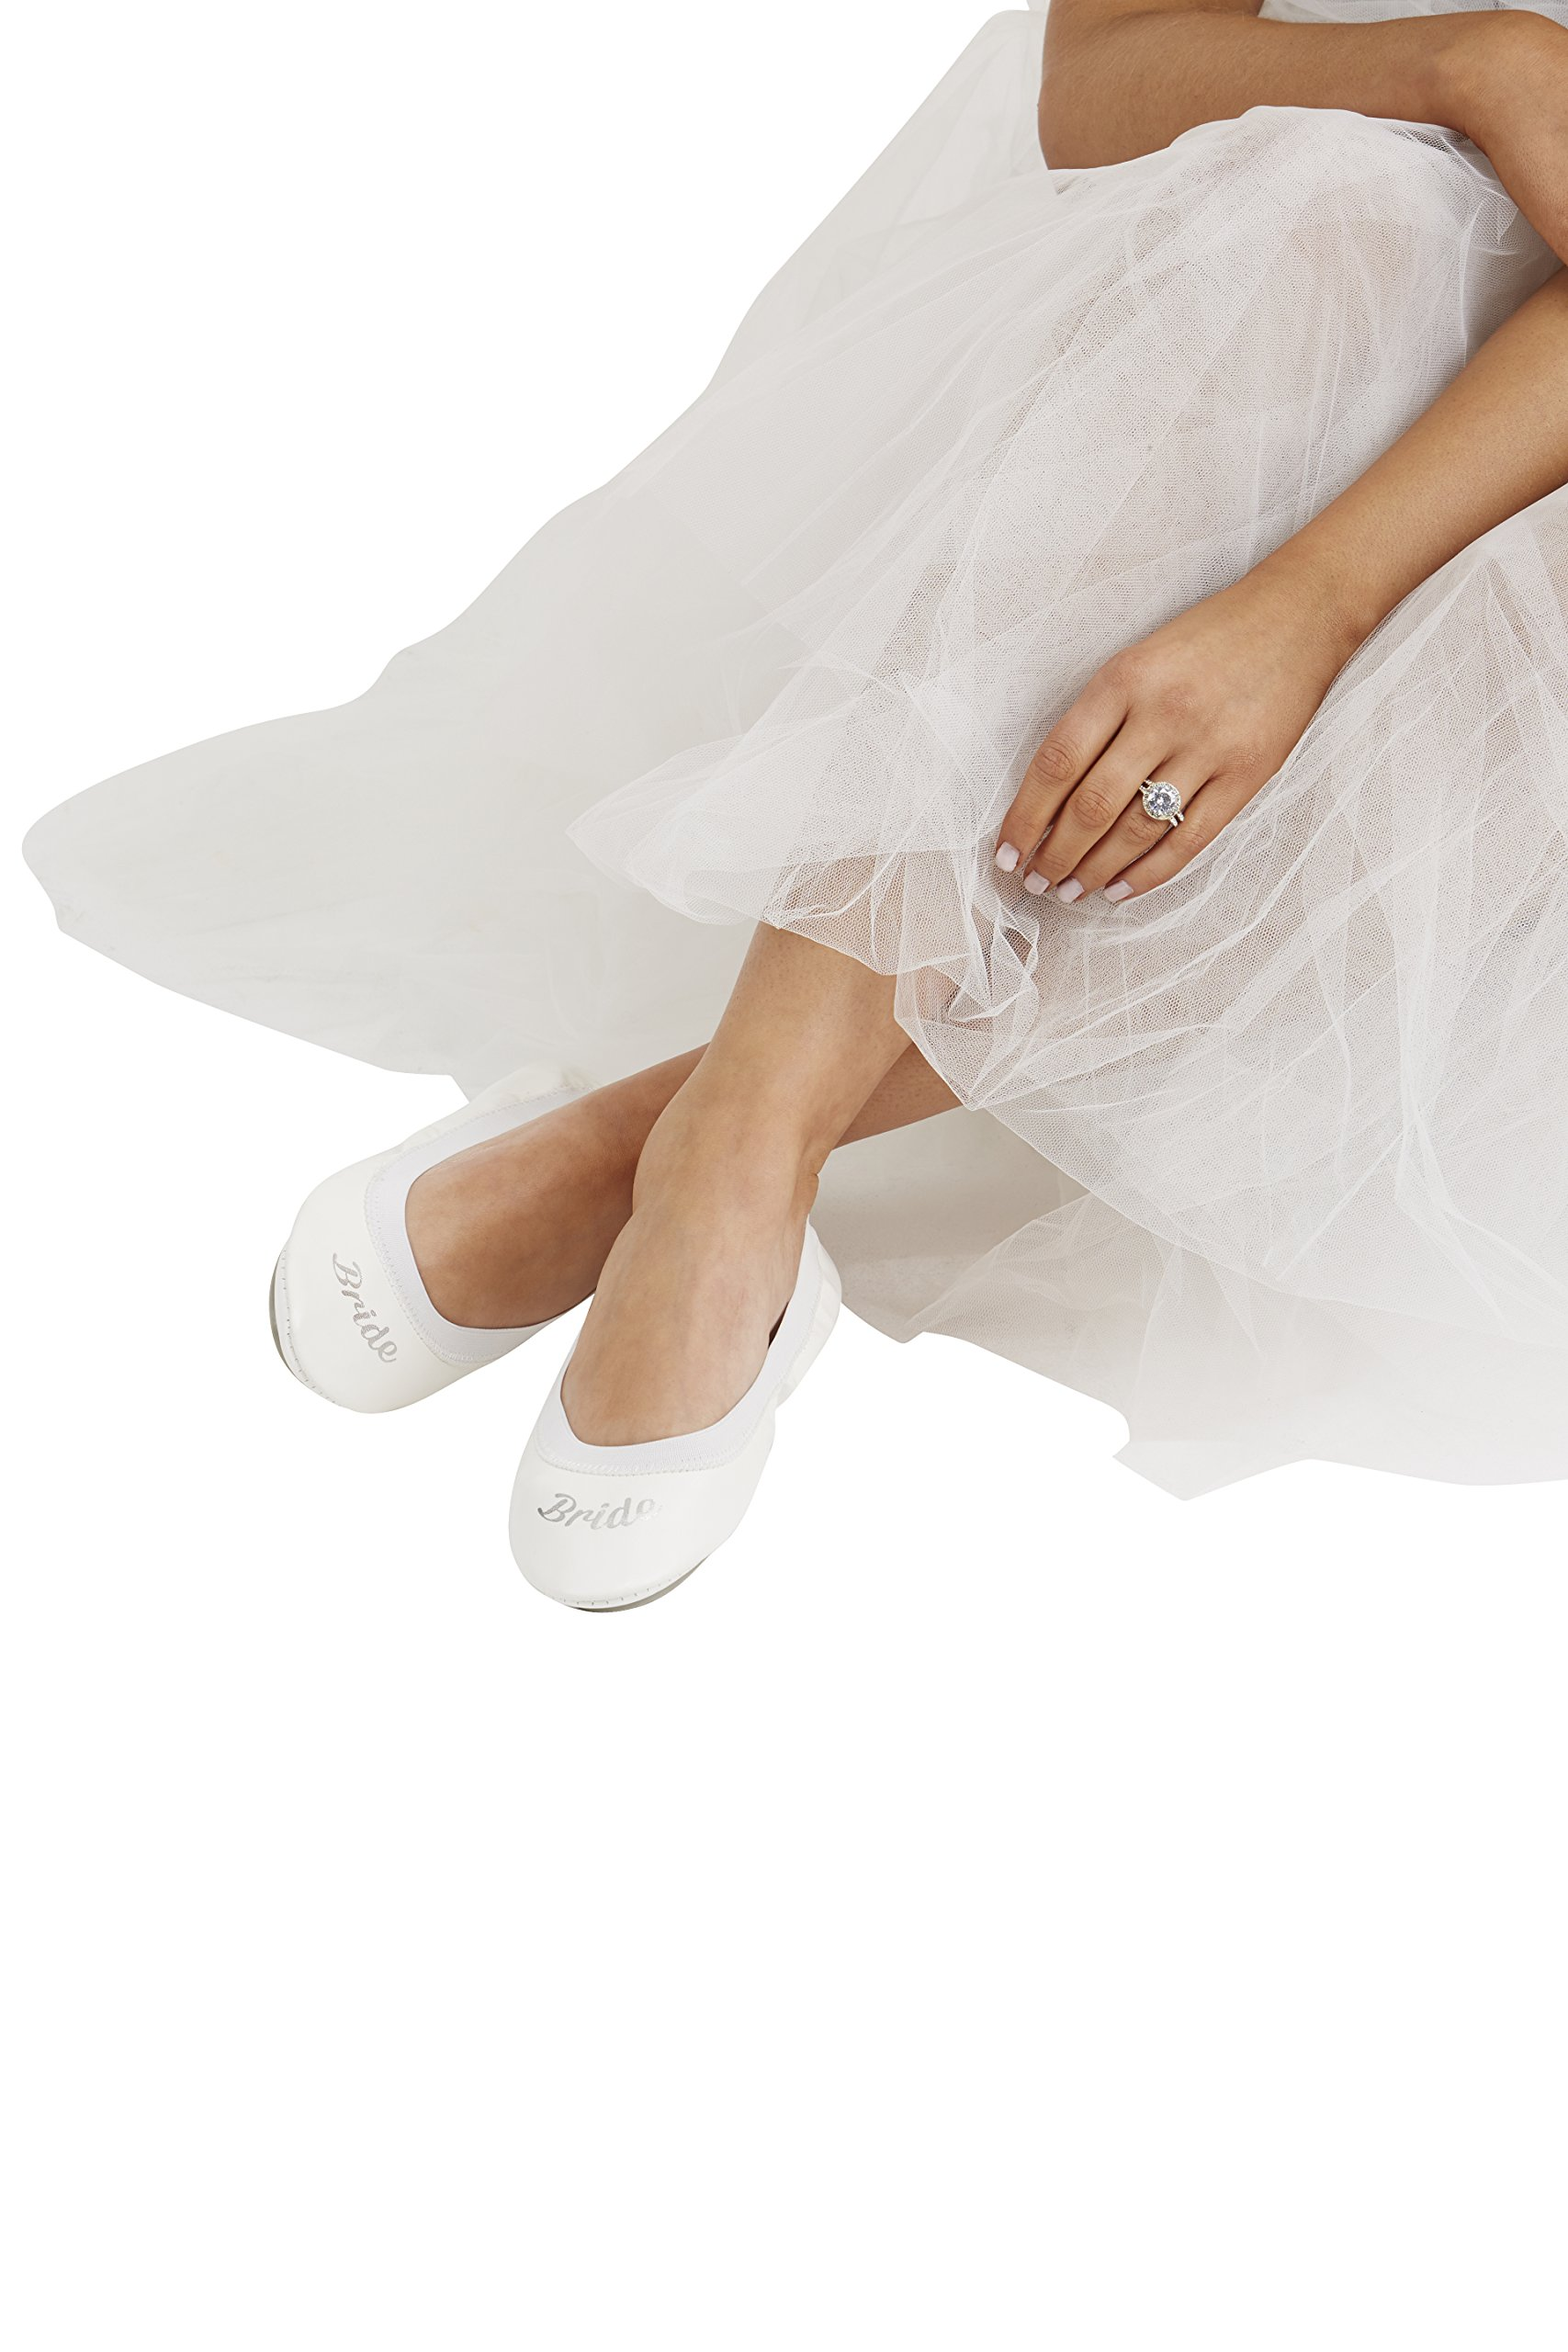 White Fold up Ballet Flats-Bridal Foldable Shoes with Bride Print-Cute Purse & Tote Carry Bag! (Large (Size 9-10))